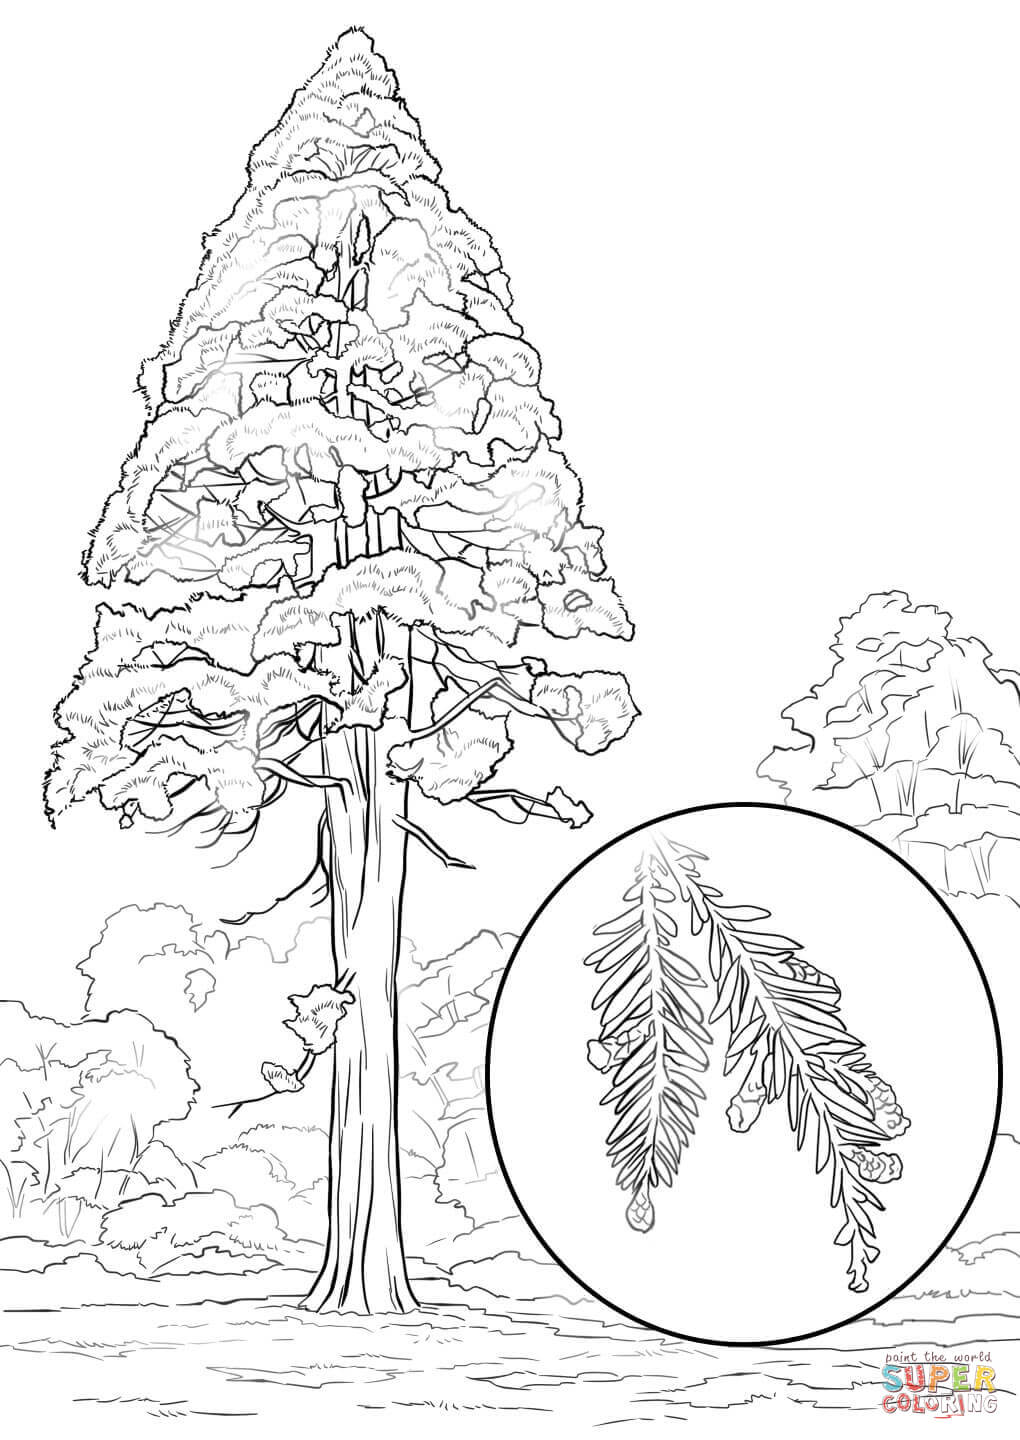 California Redwood (Sequoia Sempervirens) coloring page